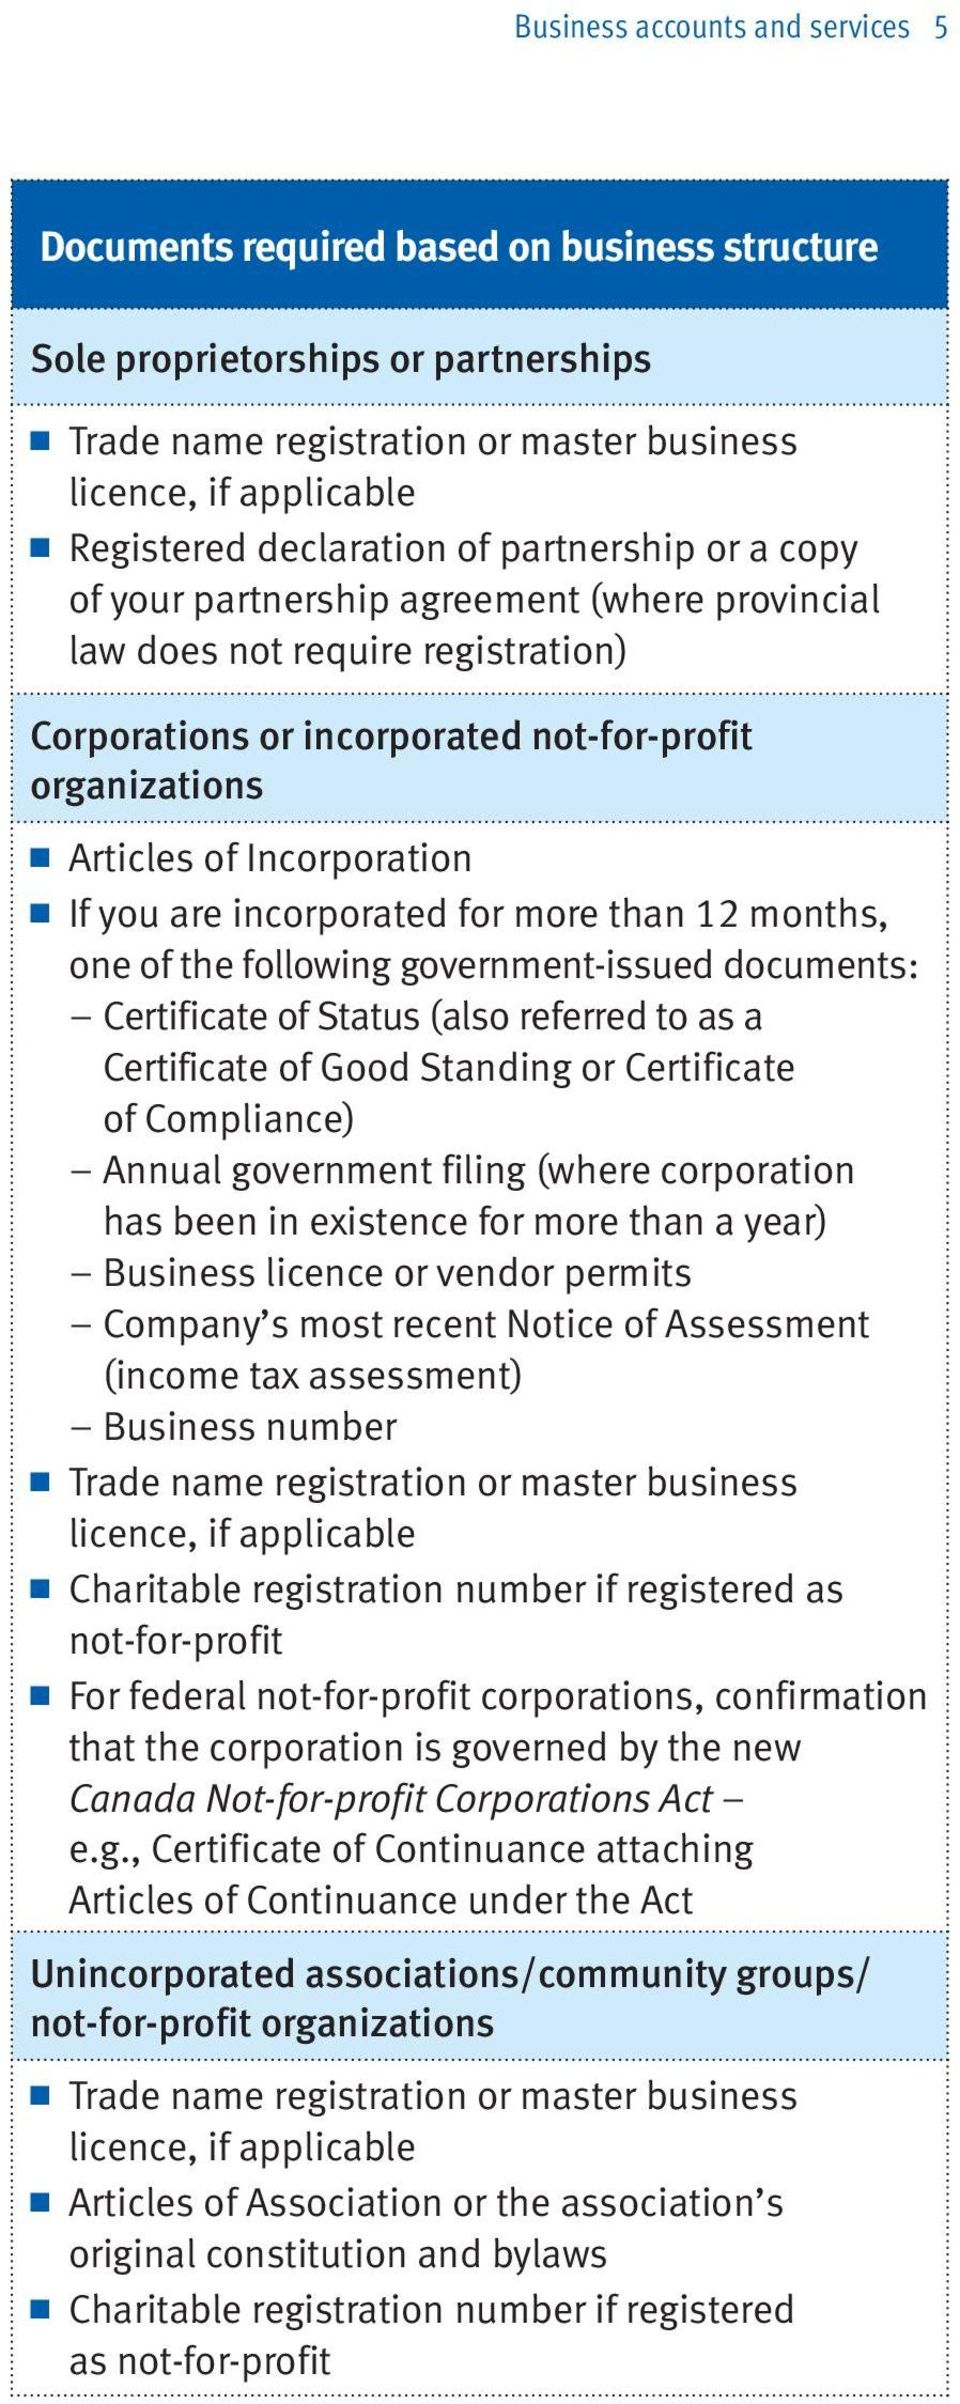 Incorporation n If you are incorporated for more than 12 months, one of the following government-issued documents: Certificate of Status (also referred to as a Certificate of Good Standing or